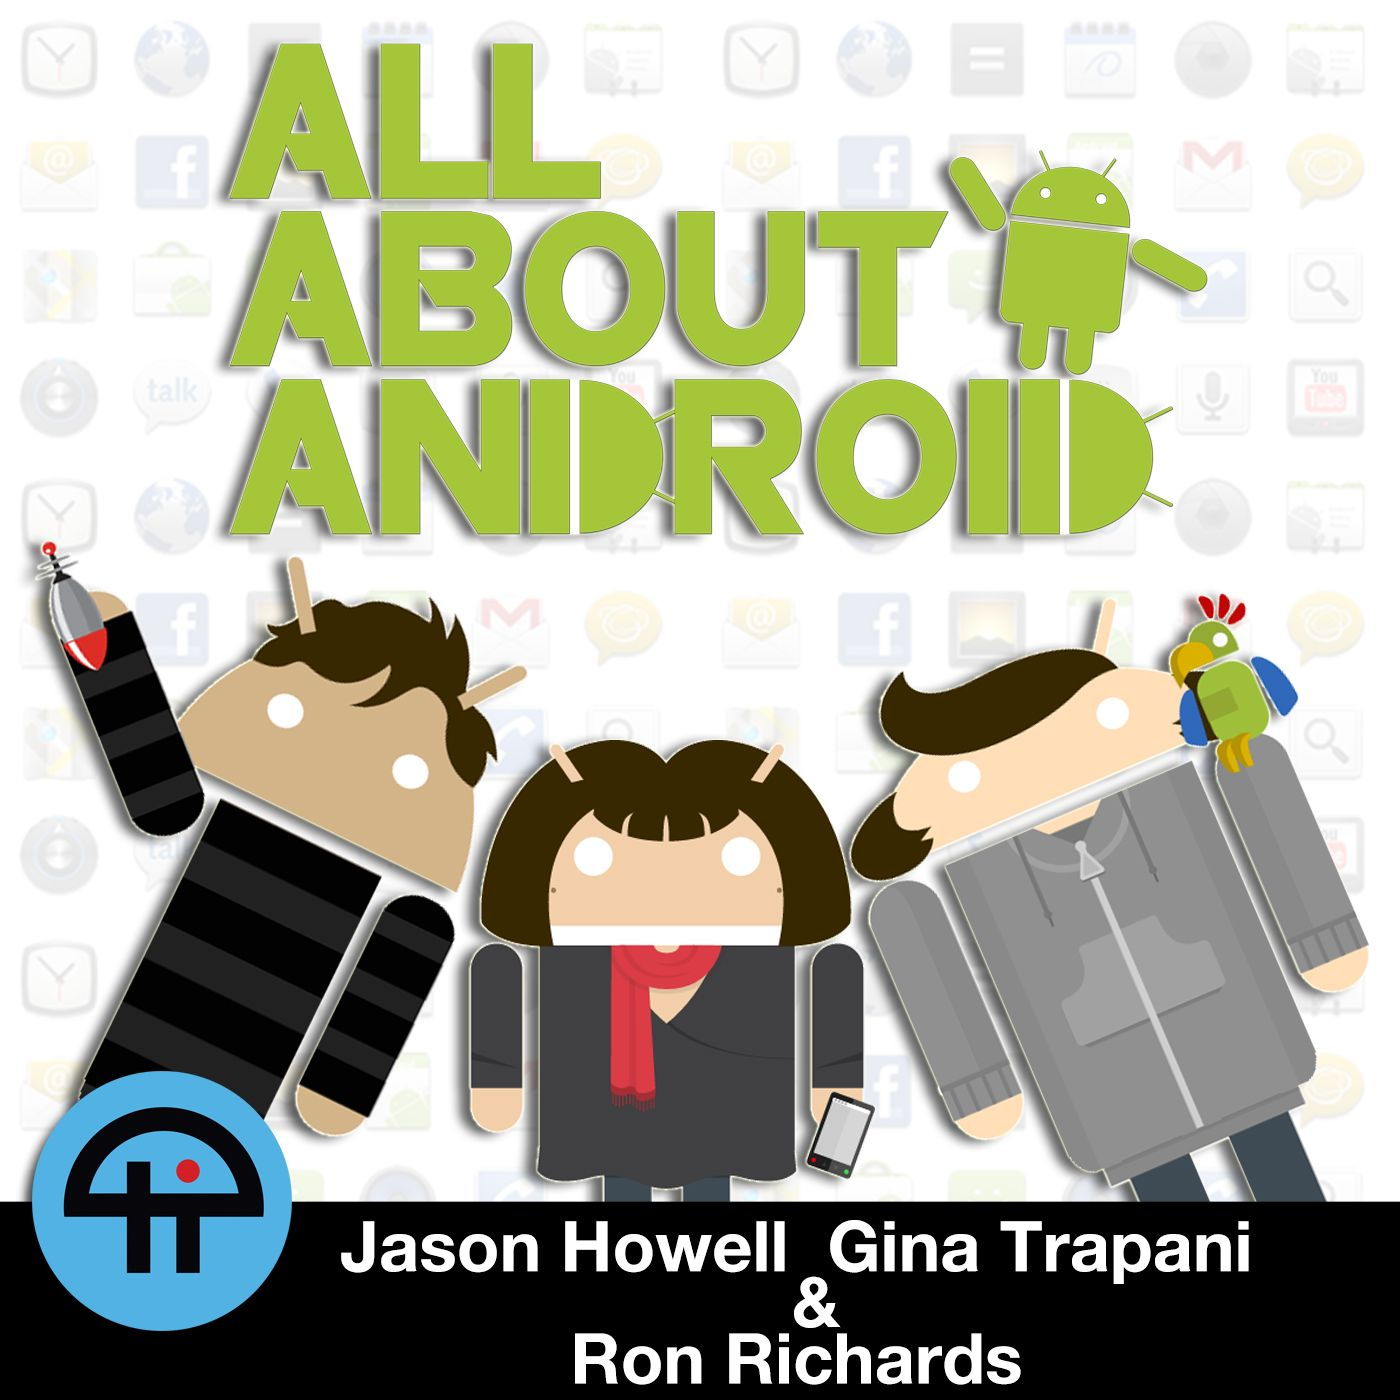 All About Android 97 TWiT.TV Android, Galaxy smartwatch